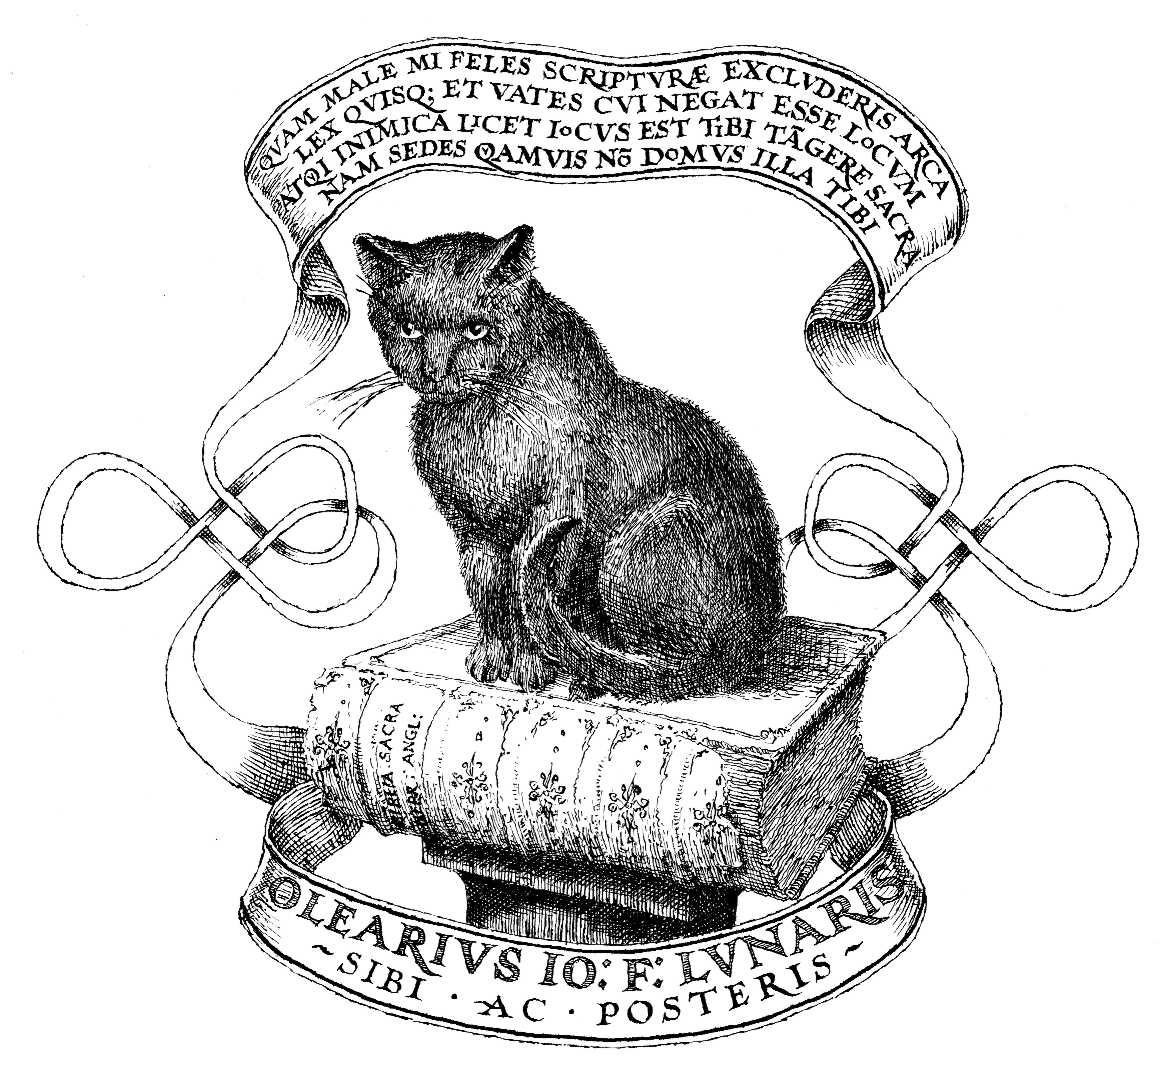 Design for a personal bookplate. The cat is sitting on a